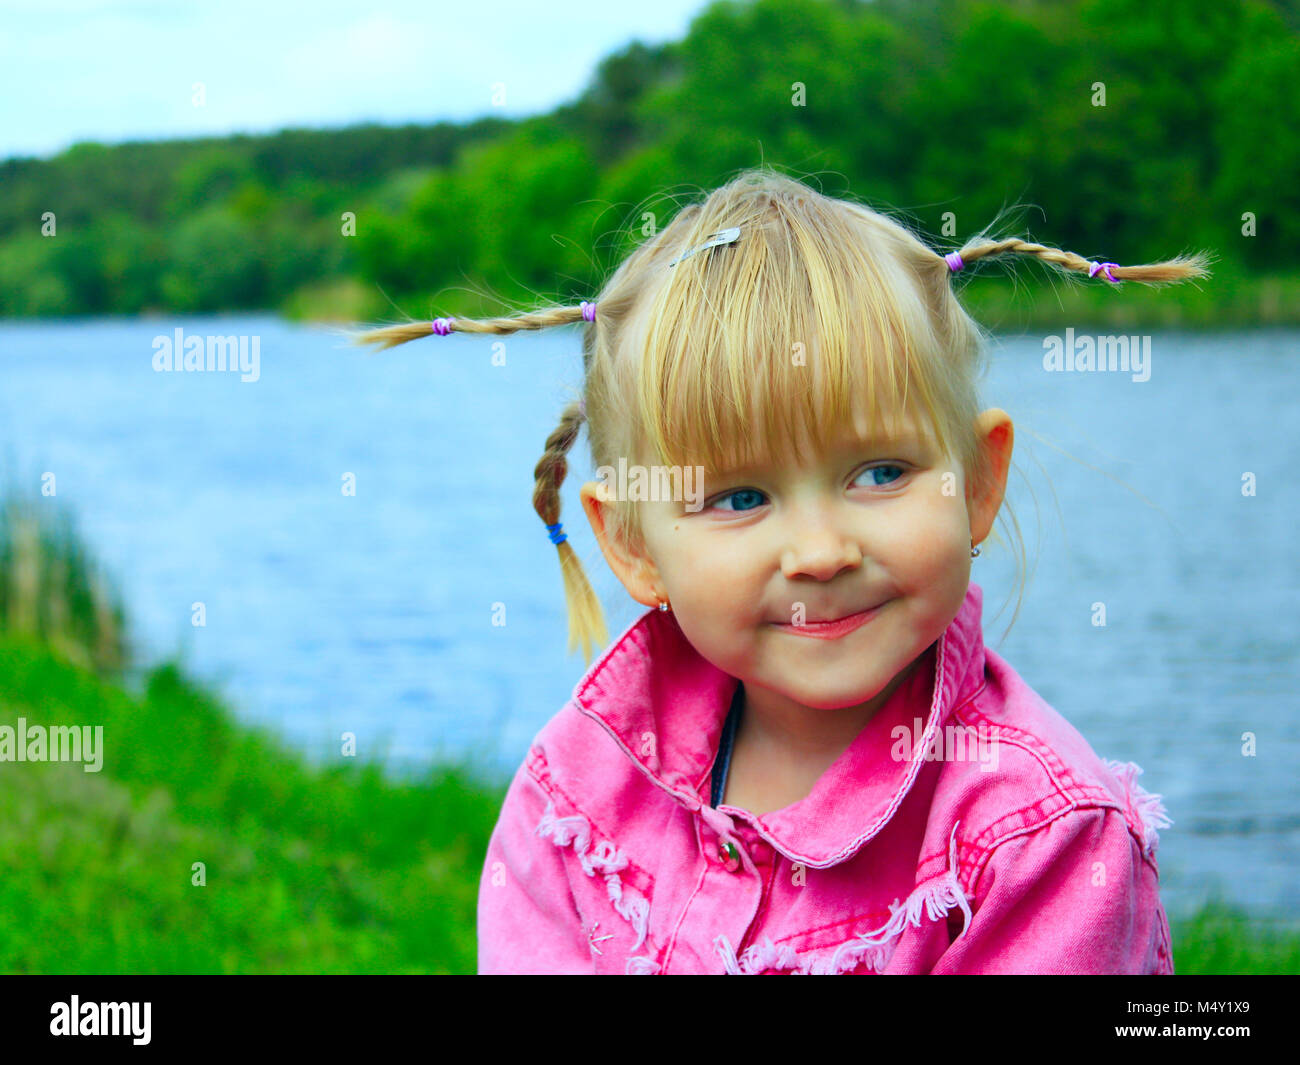 pretty smiling baby girl with nice plaits stock photo: 175156529 - alamy